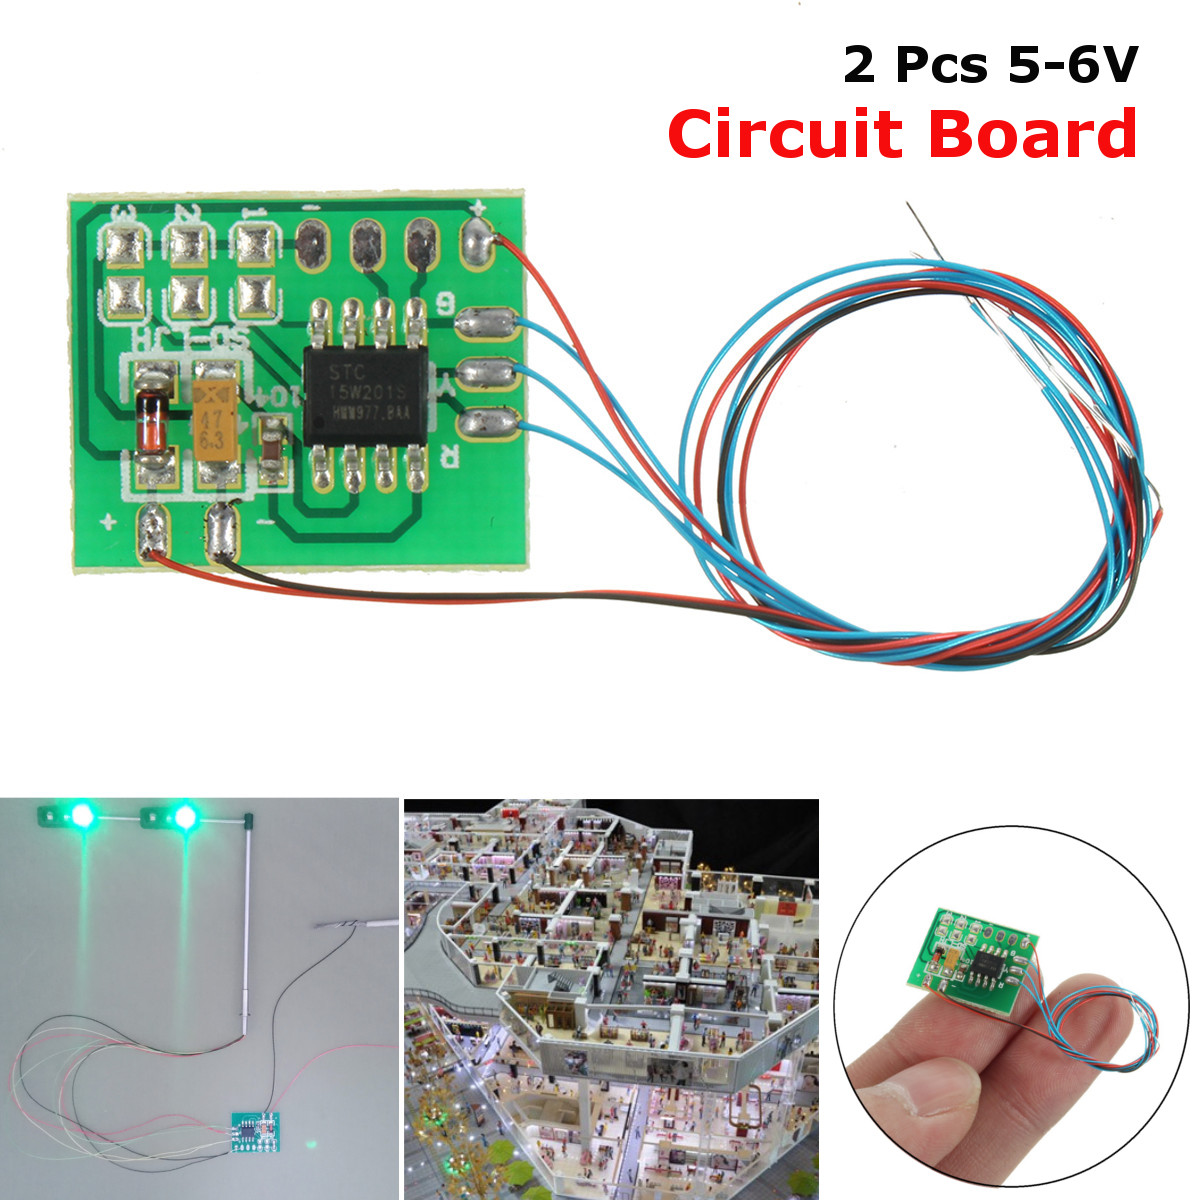 Traffic Light Circuit Pictures 3pcs 60mm Model 3 Metal Signal Lights 5 6v 036w Power 2pcs Diy Scale Construction Sand Table Board Ho Train